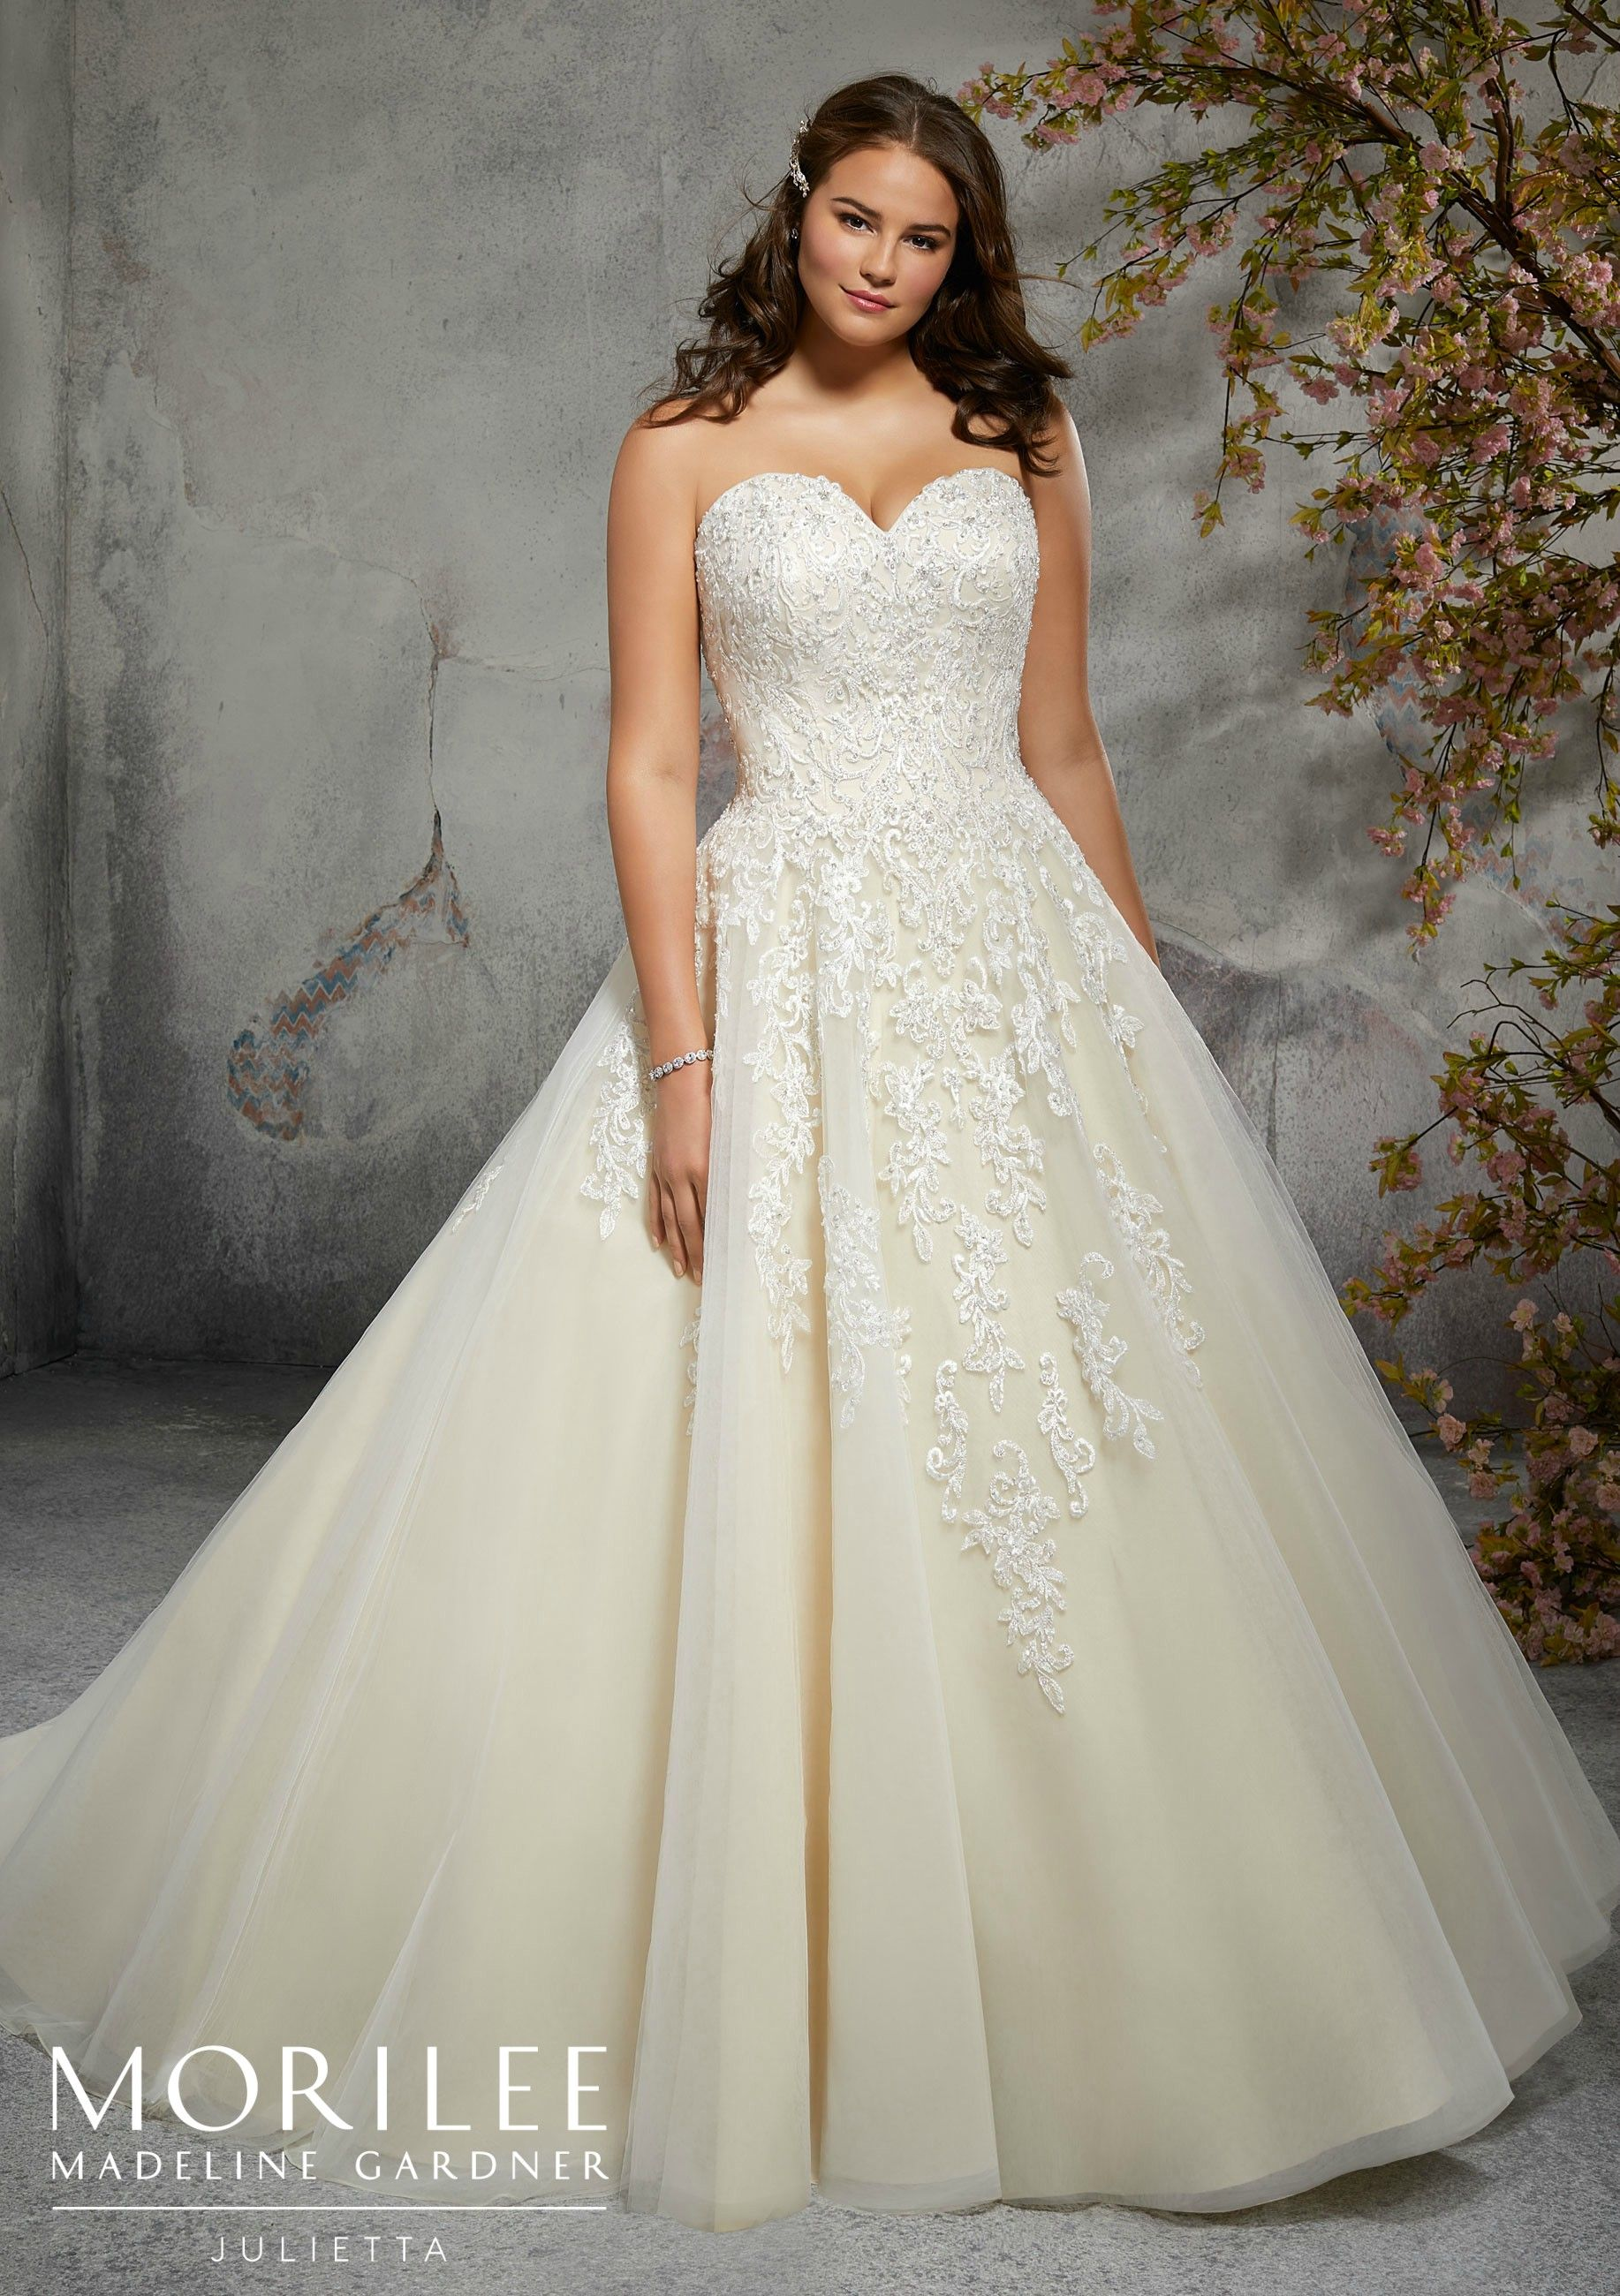 Mori lee madeline gardner wedding dress  Morilee  Madeline Gardner Lizbeth Style   Figure Flattering A